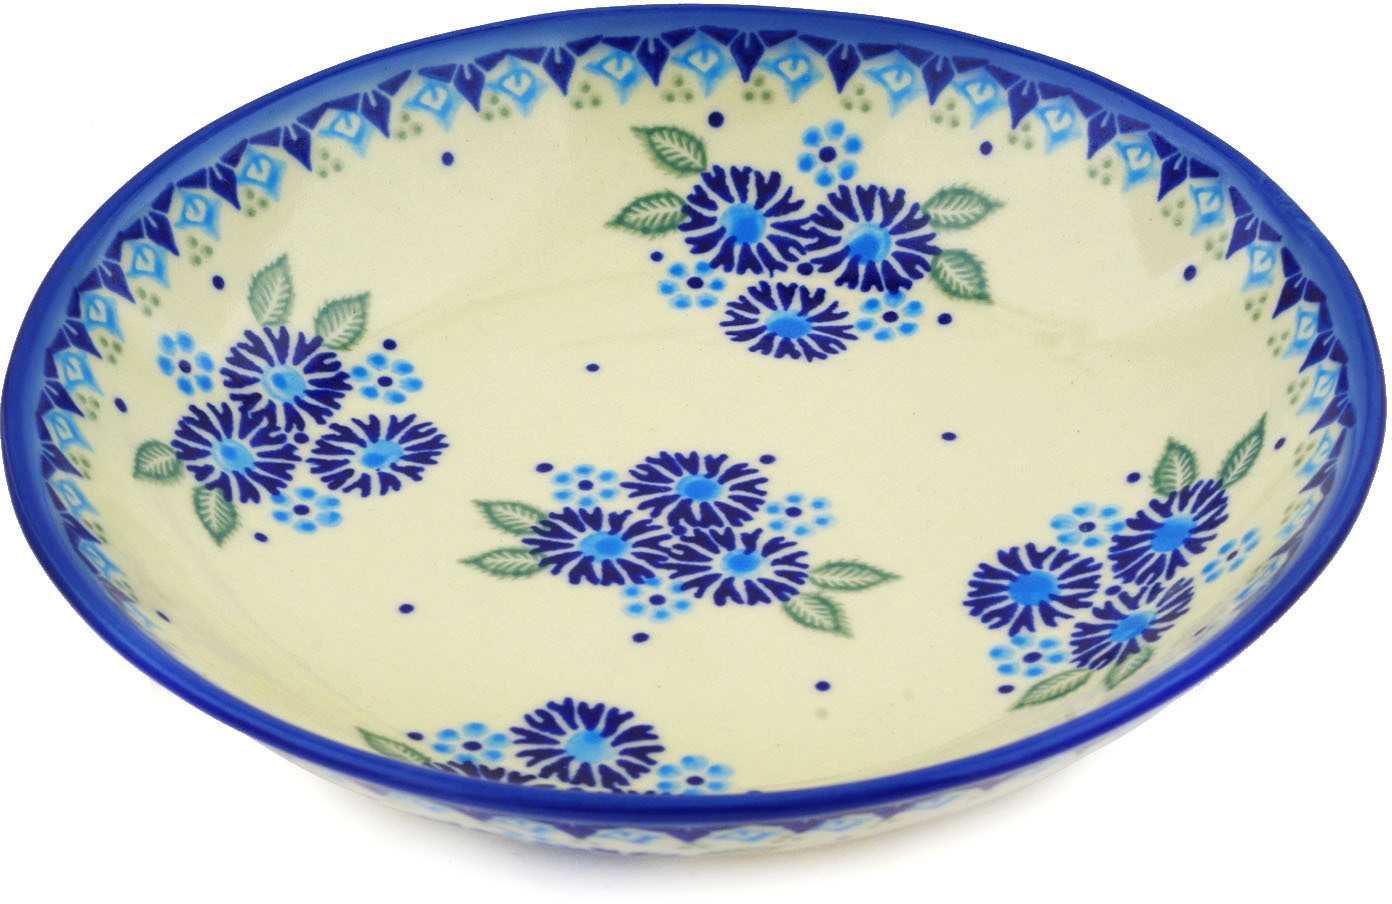 Polish Pottery 8�-inch Pasta Bowl (Aster Patches Theme) Hand Painted in Boleslawiec, Poland + Certificate of... by Ceramika Bona